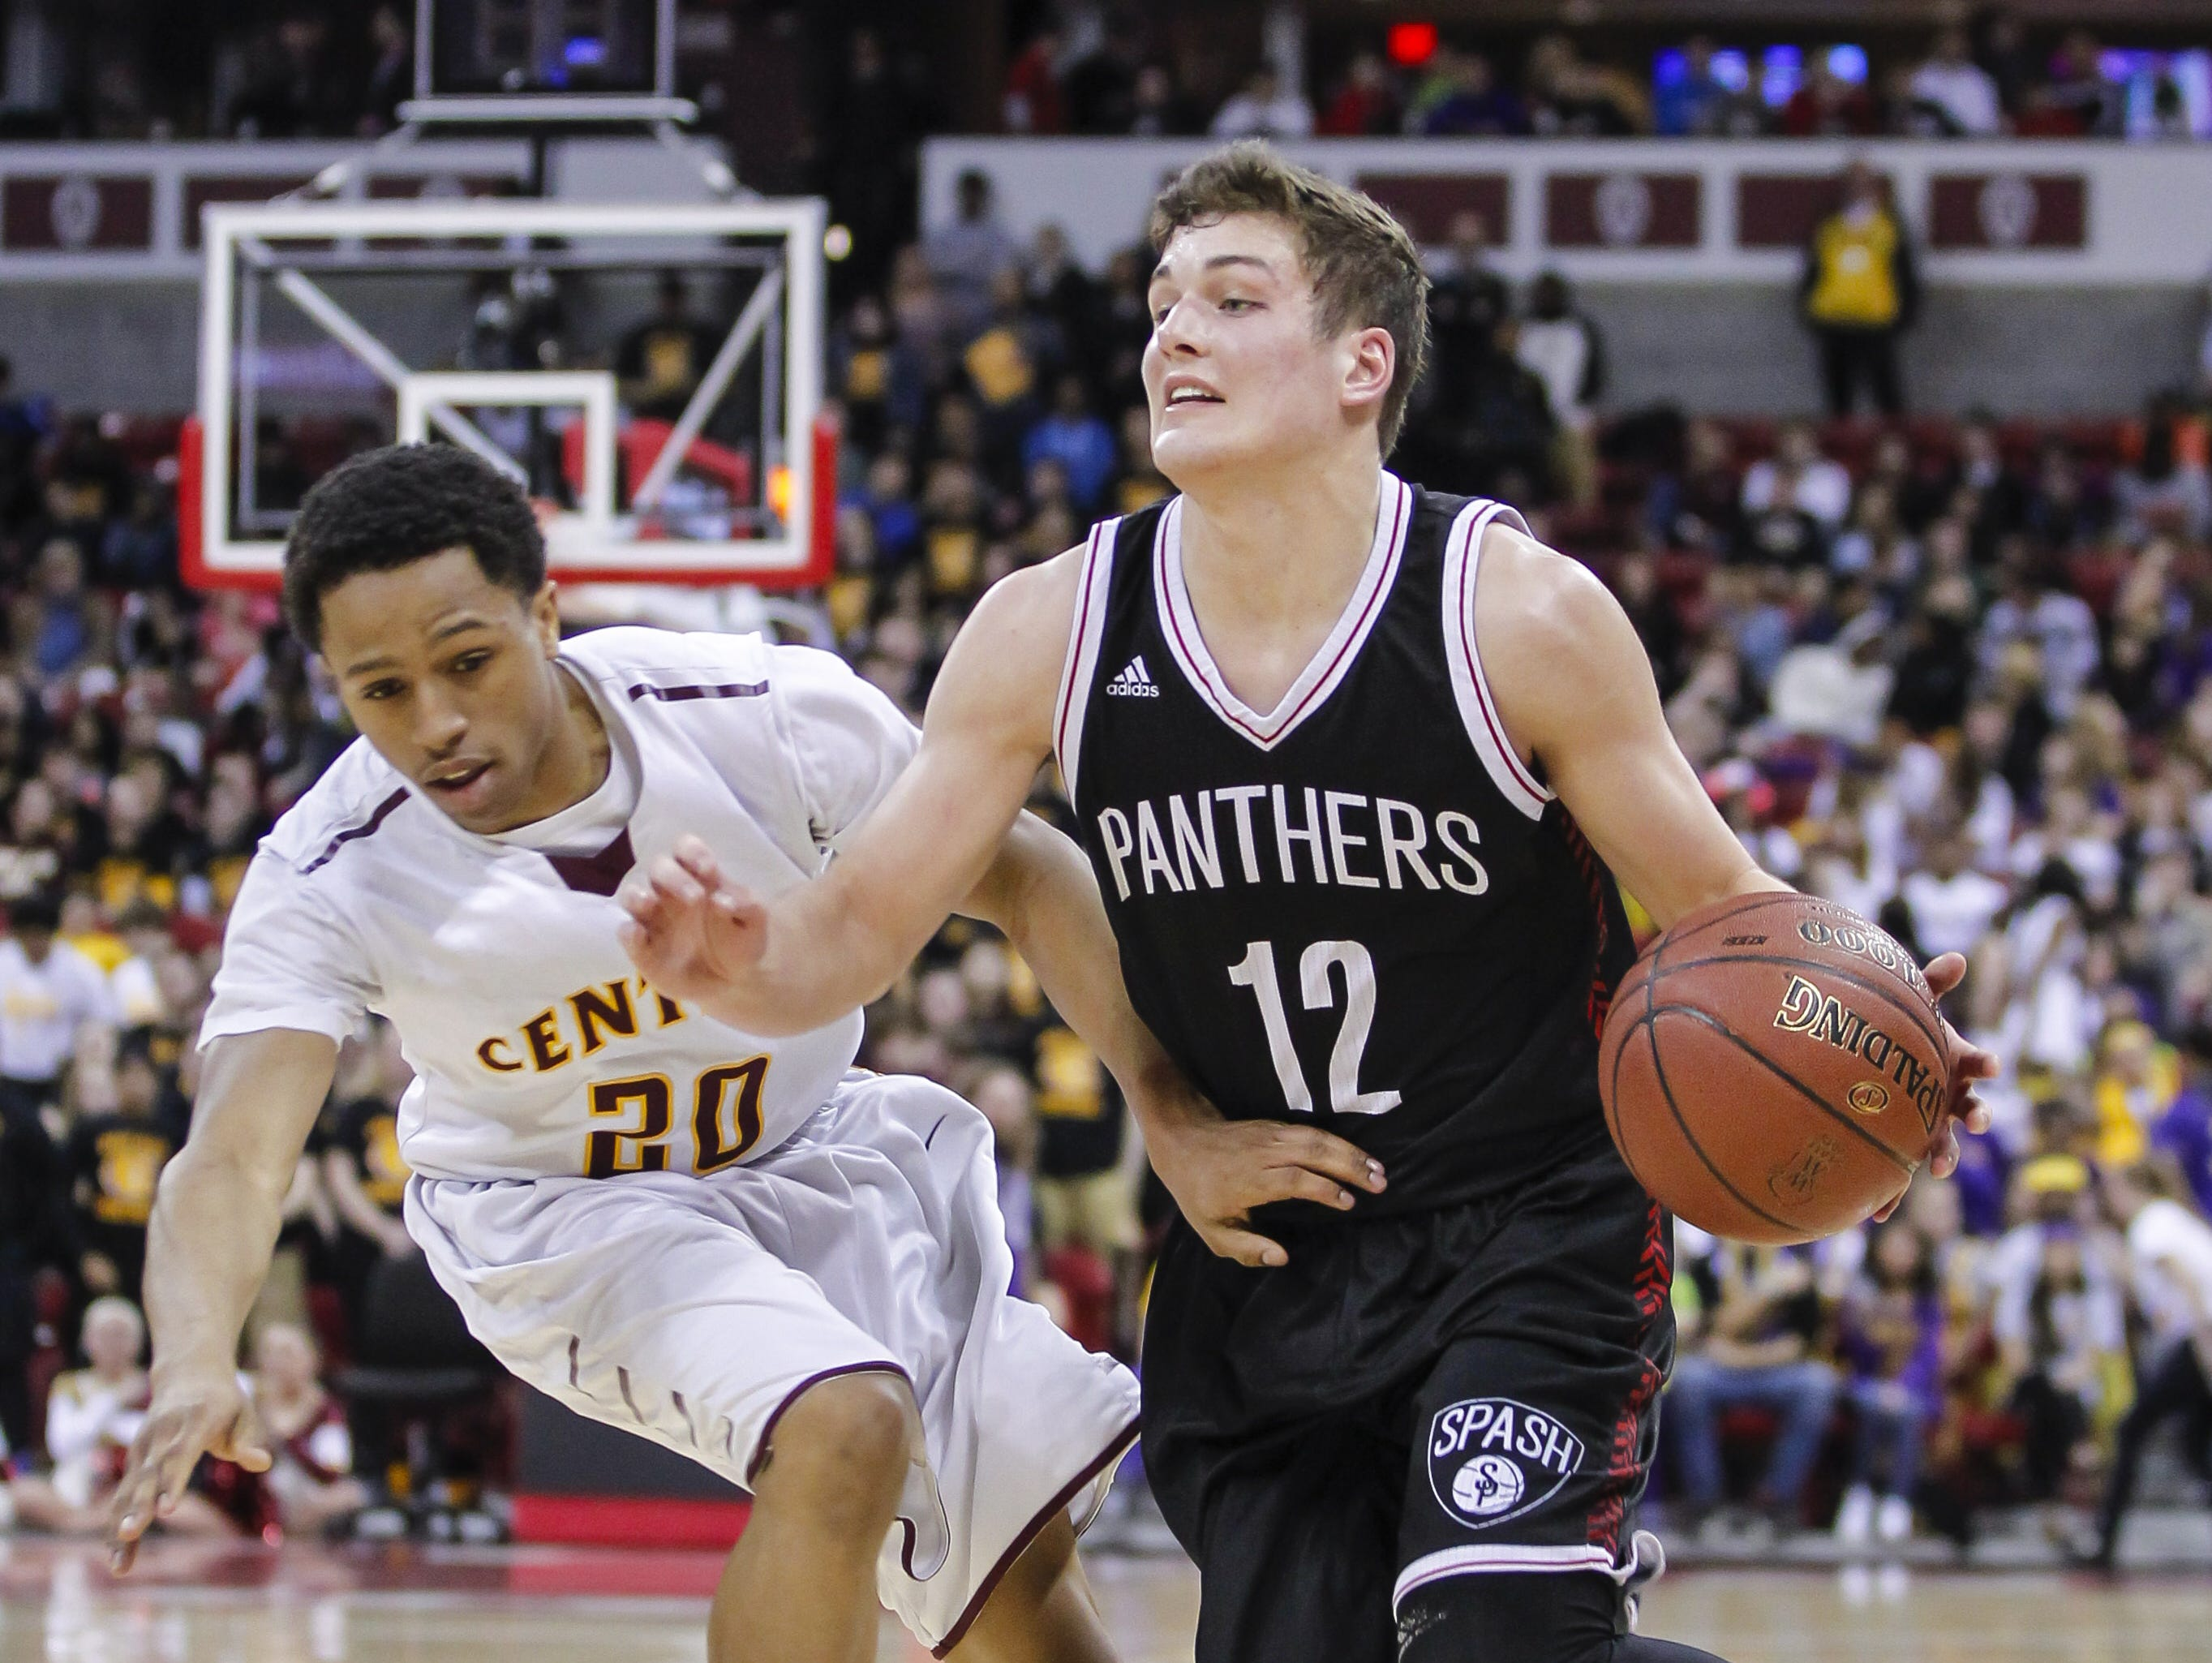 Stevens Point's Trev Anderson (12) drives past West Allis Central's Geo Owens during the second half of their Division 1 semifinals in the WIAA boys state basketball championships on March 20 in Madison.